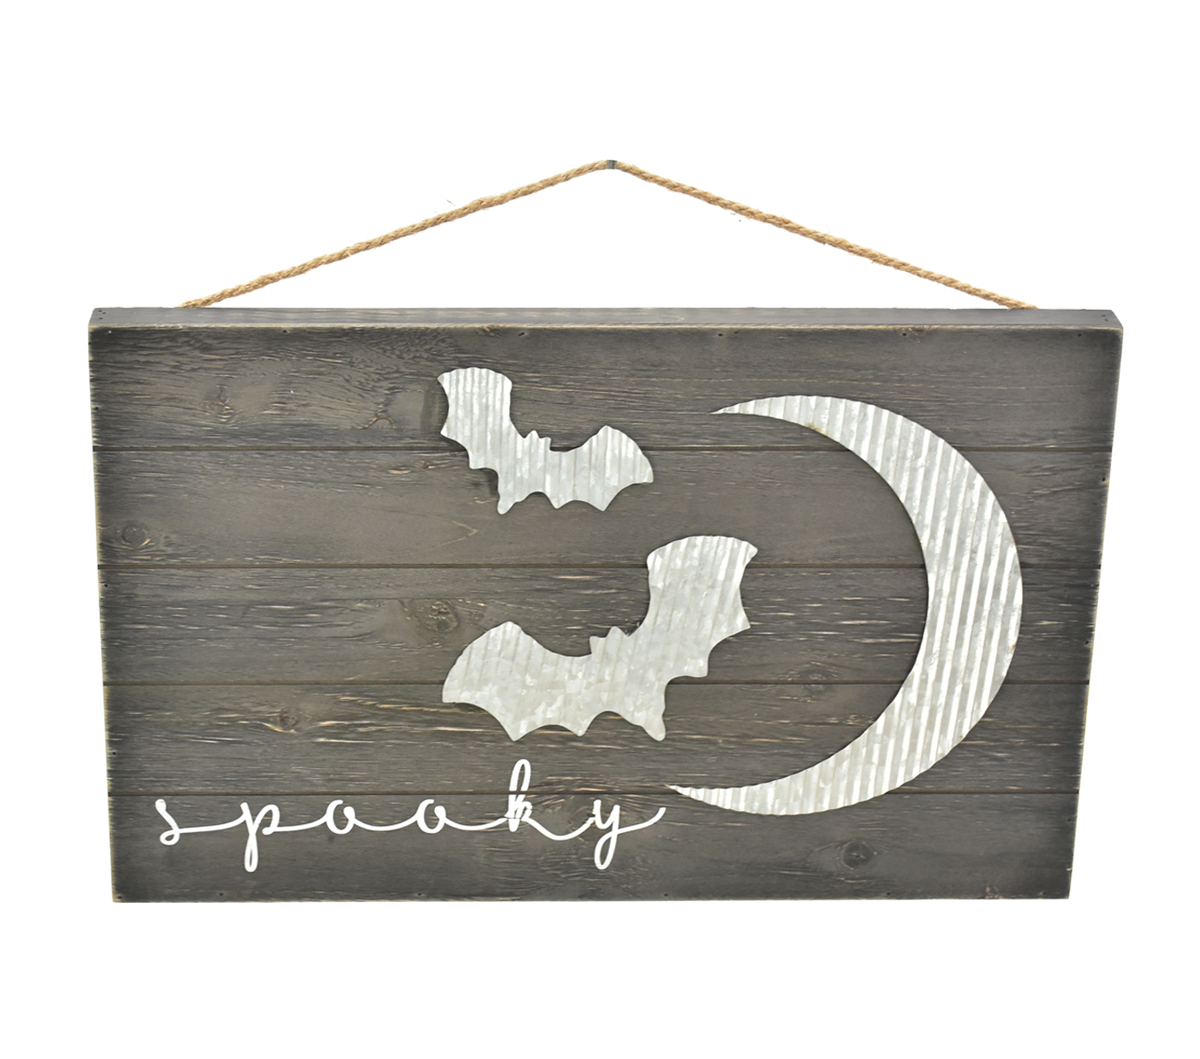 Maker\u0027s Halloween 18.88\u0027\u0027x11.75\u0027\u0027 Wall Decor-Spooky & Bats